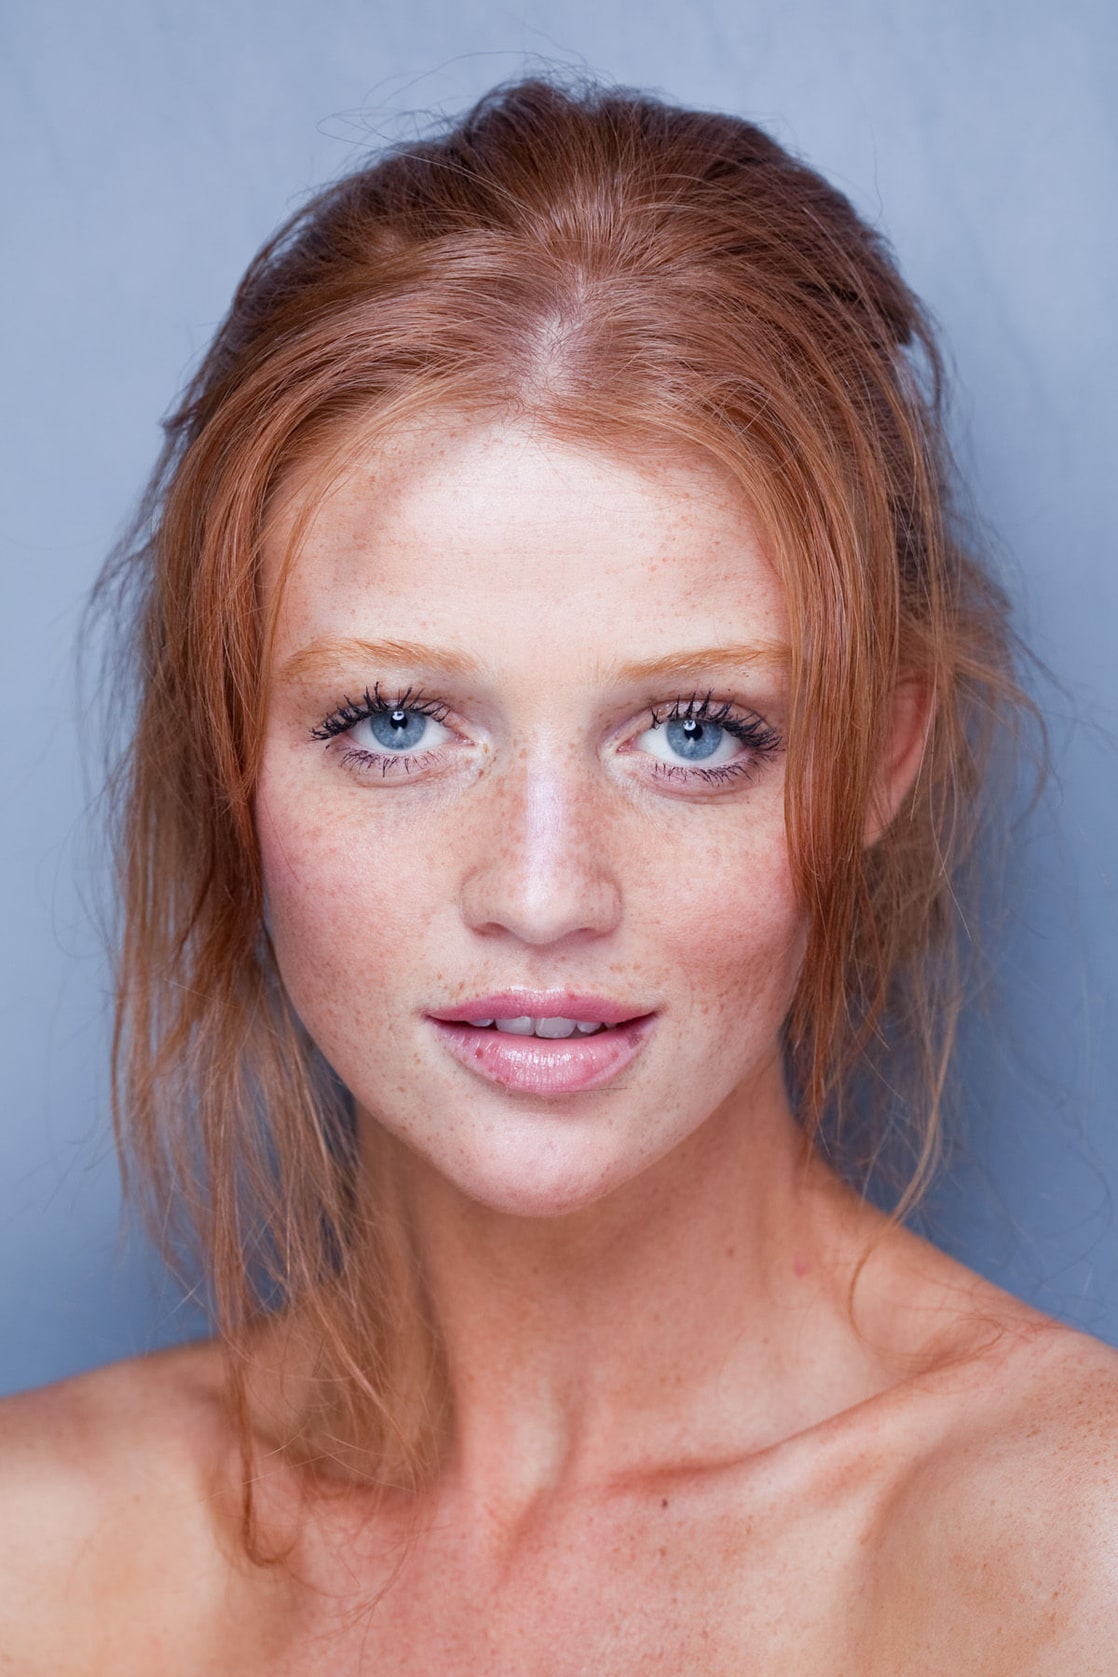 Pretty Girls With Natural Red Hair And Blue Eyes Picture of Cintia Dick...